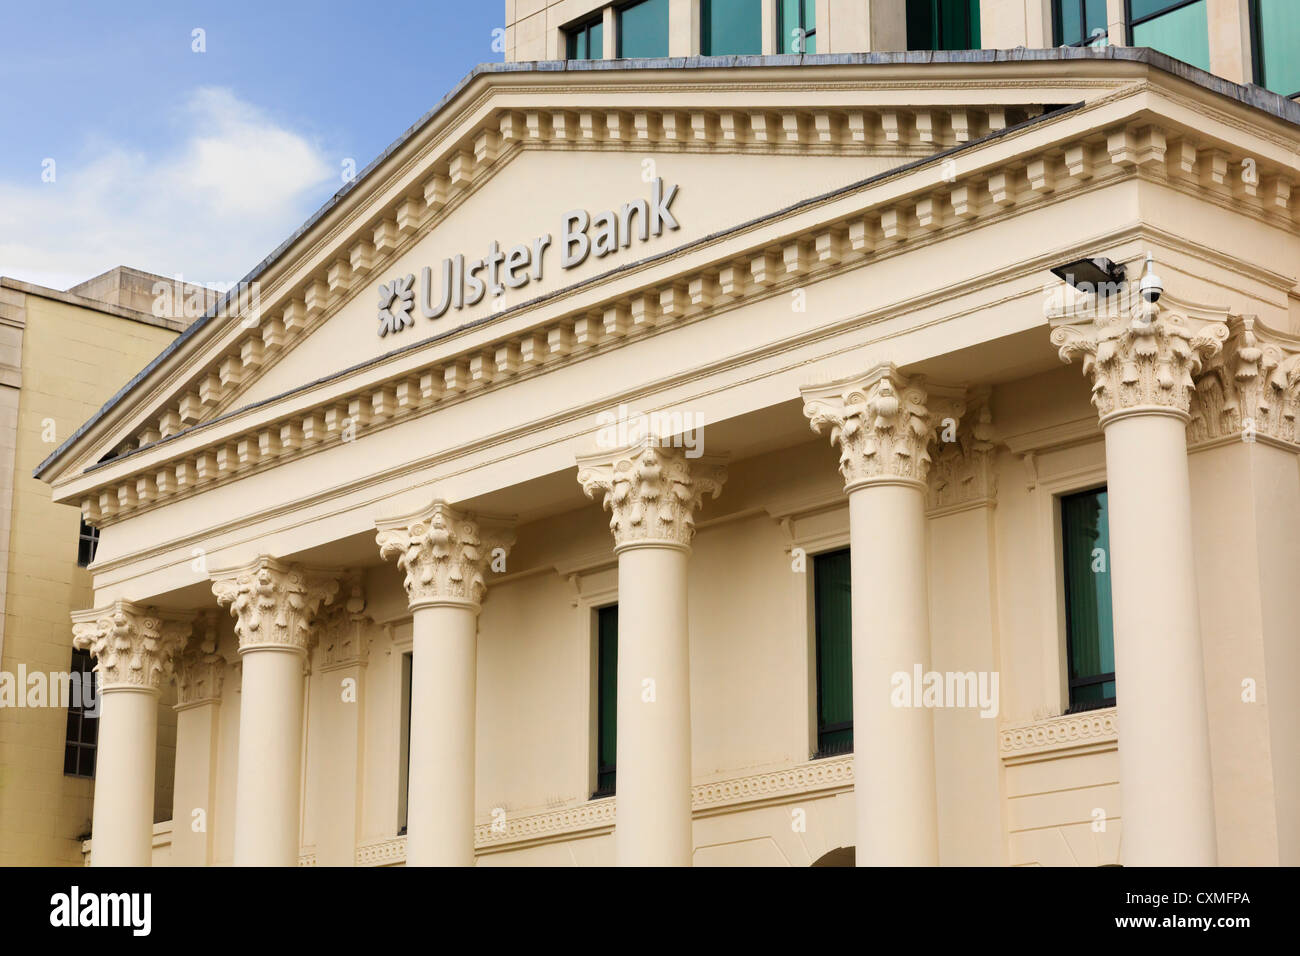 Ulster Bank building in Donegall Square, Belfast city, County Antrim, Northern Ireland, UK - Stock Image